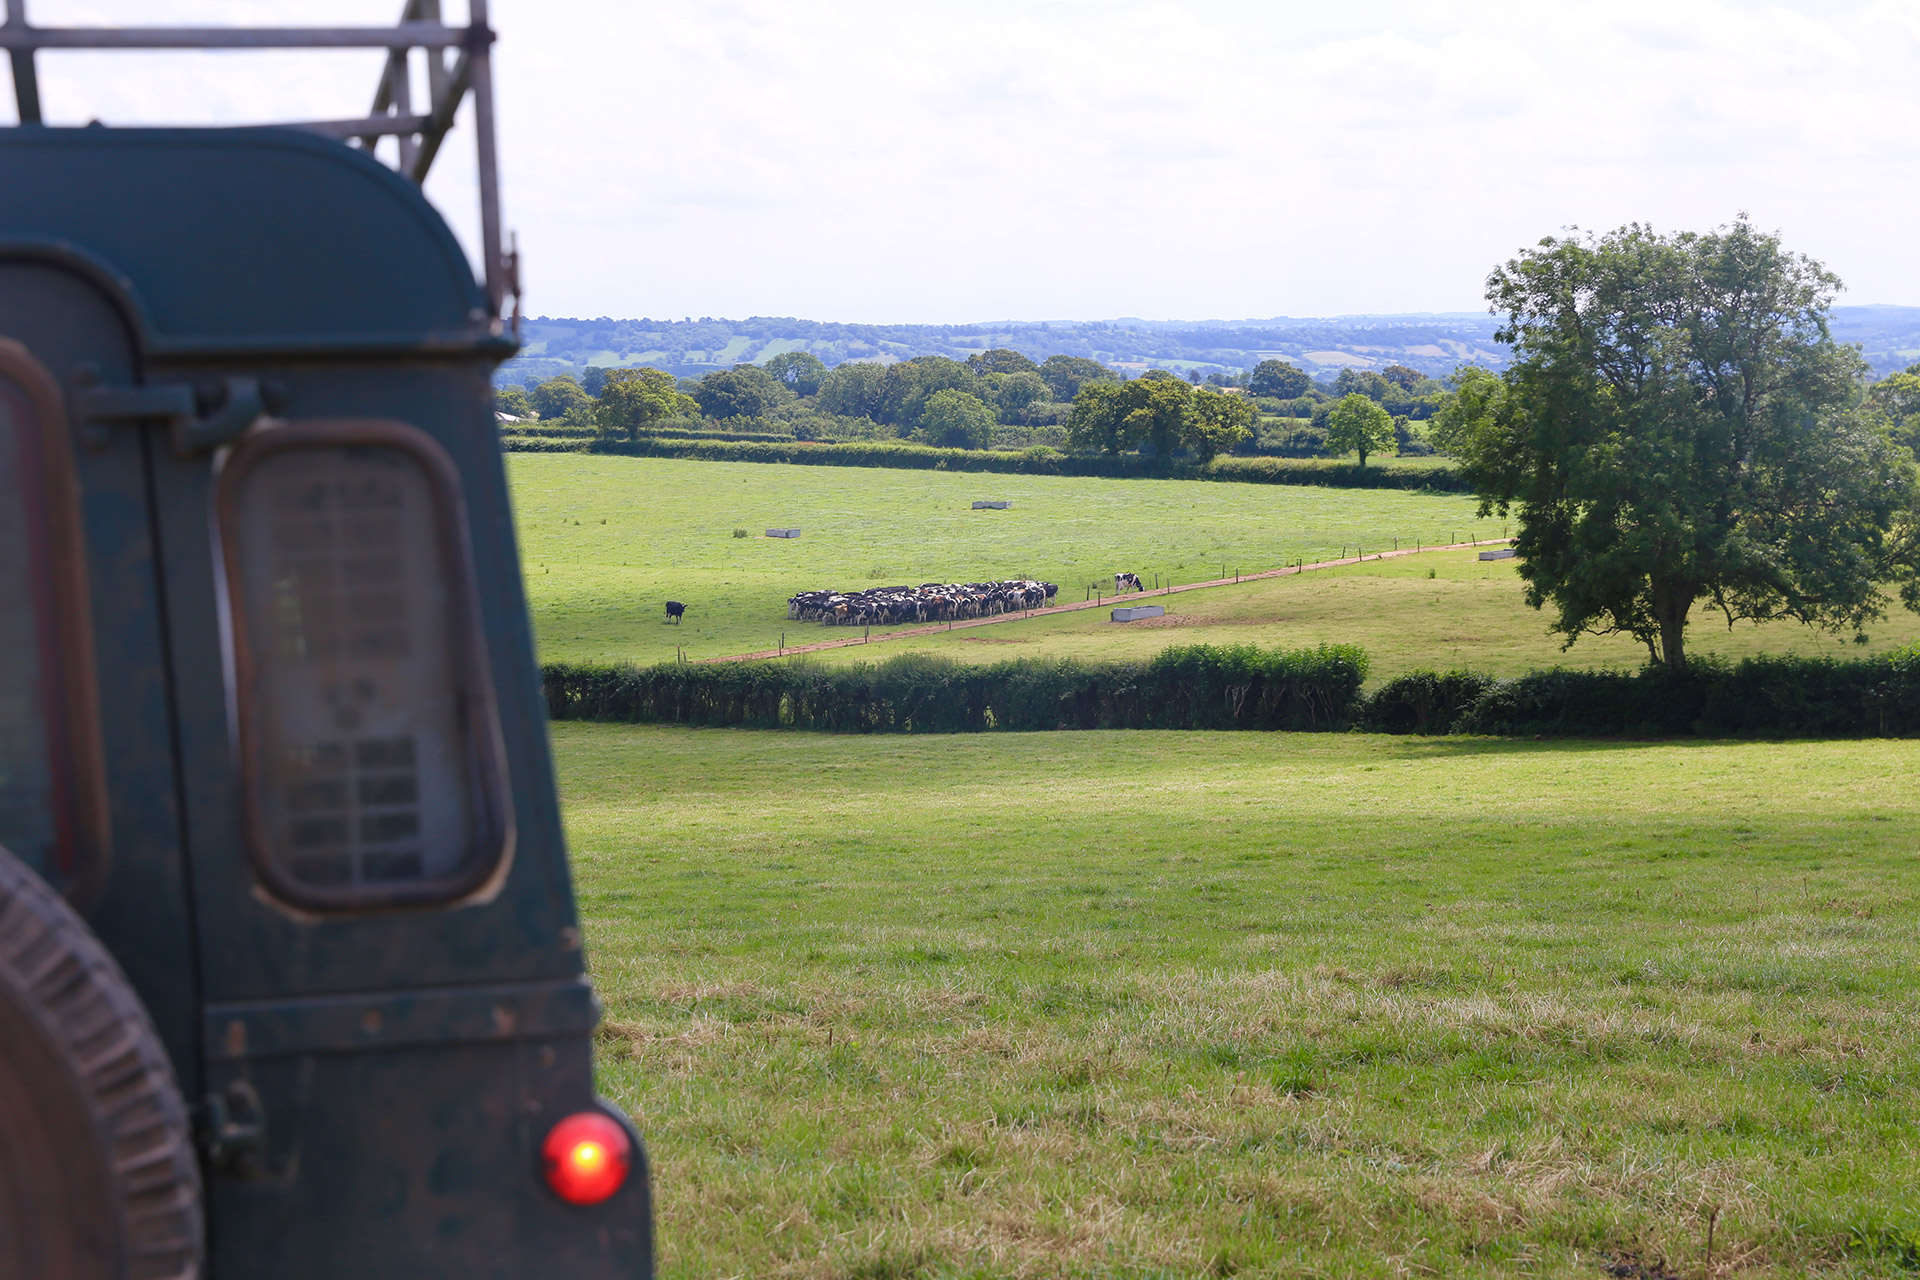 The view of Richards cattle from his Land Rover Defender